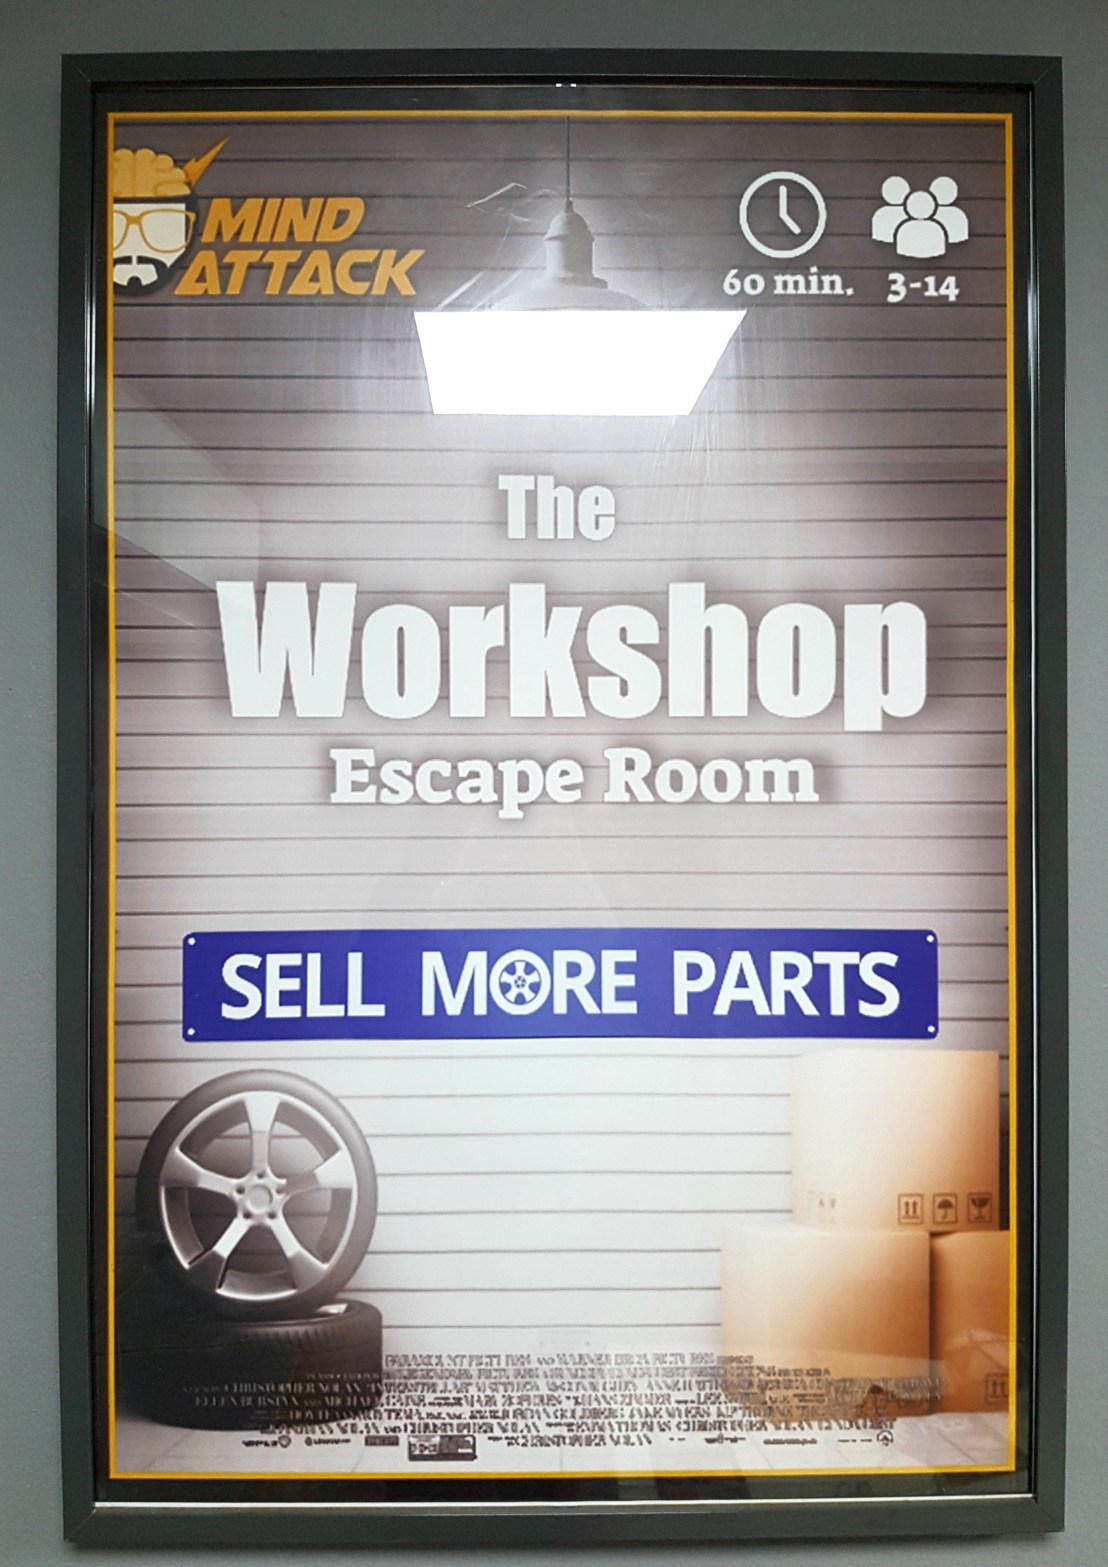 The workshop escape room